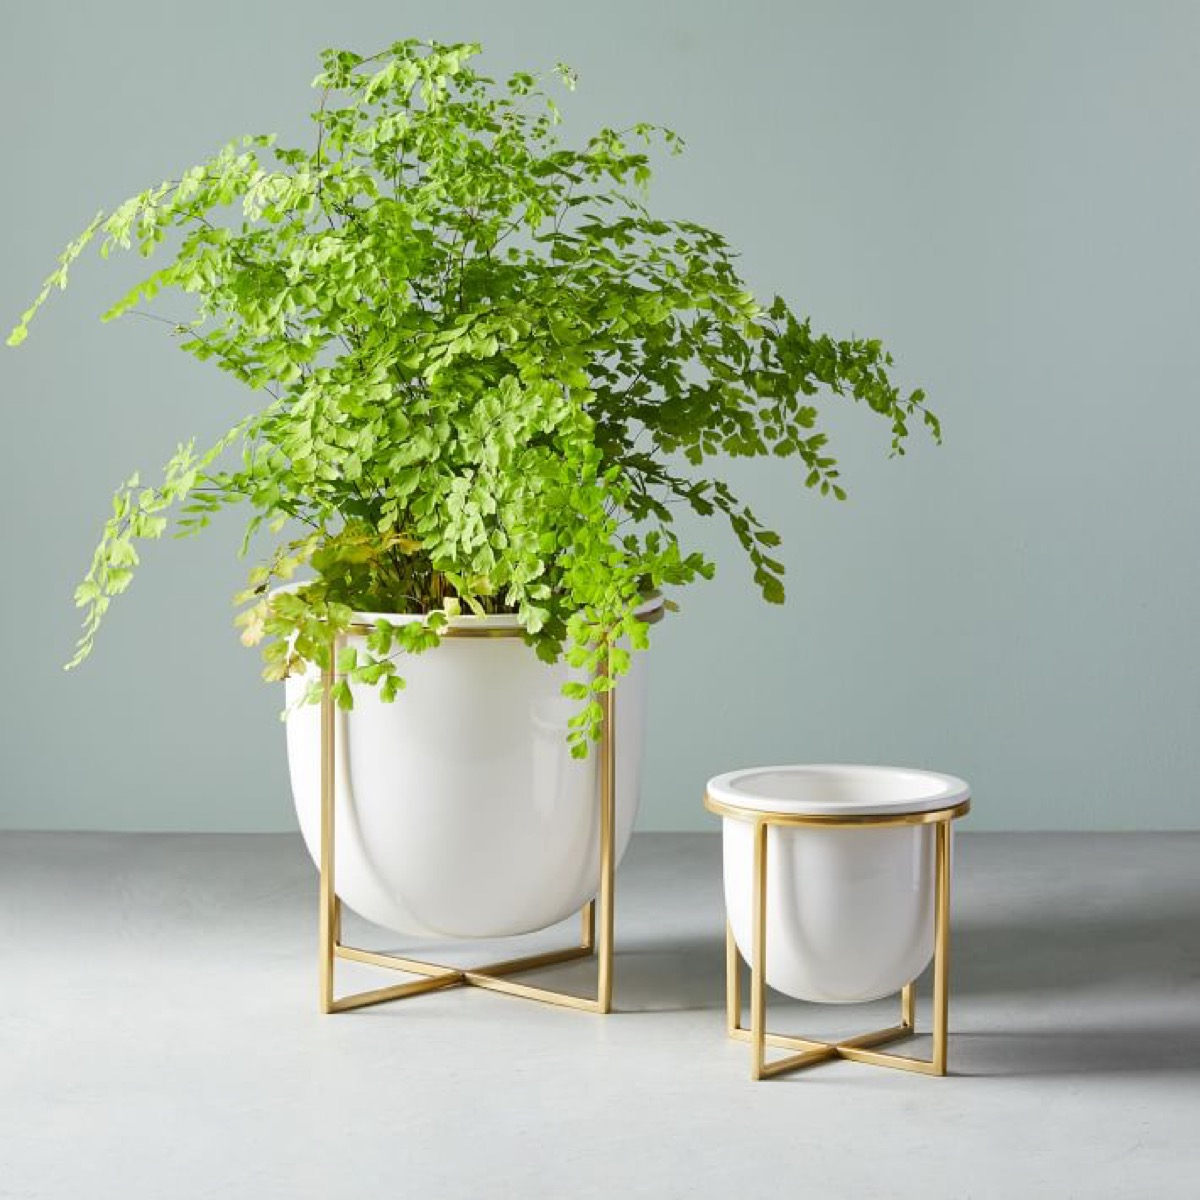 Ceramic and brass planters with plant